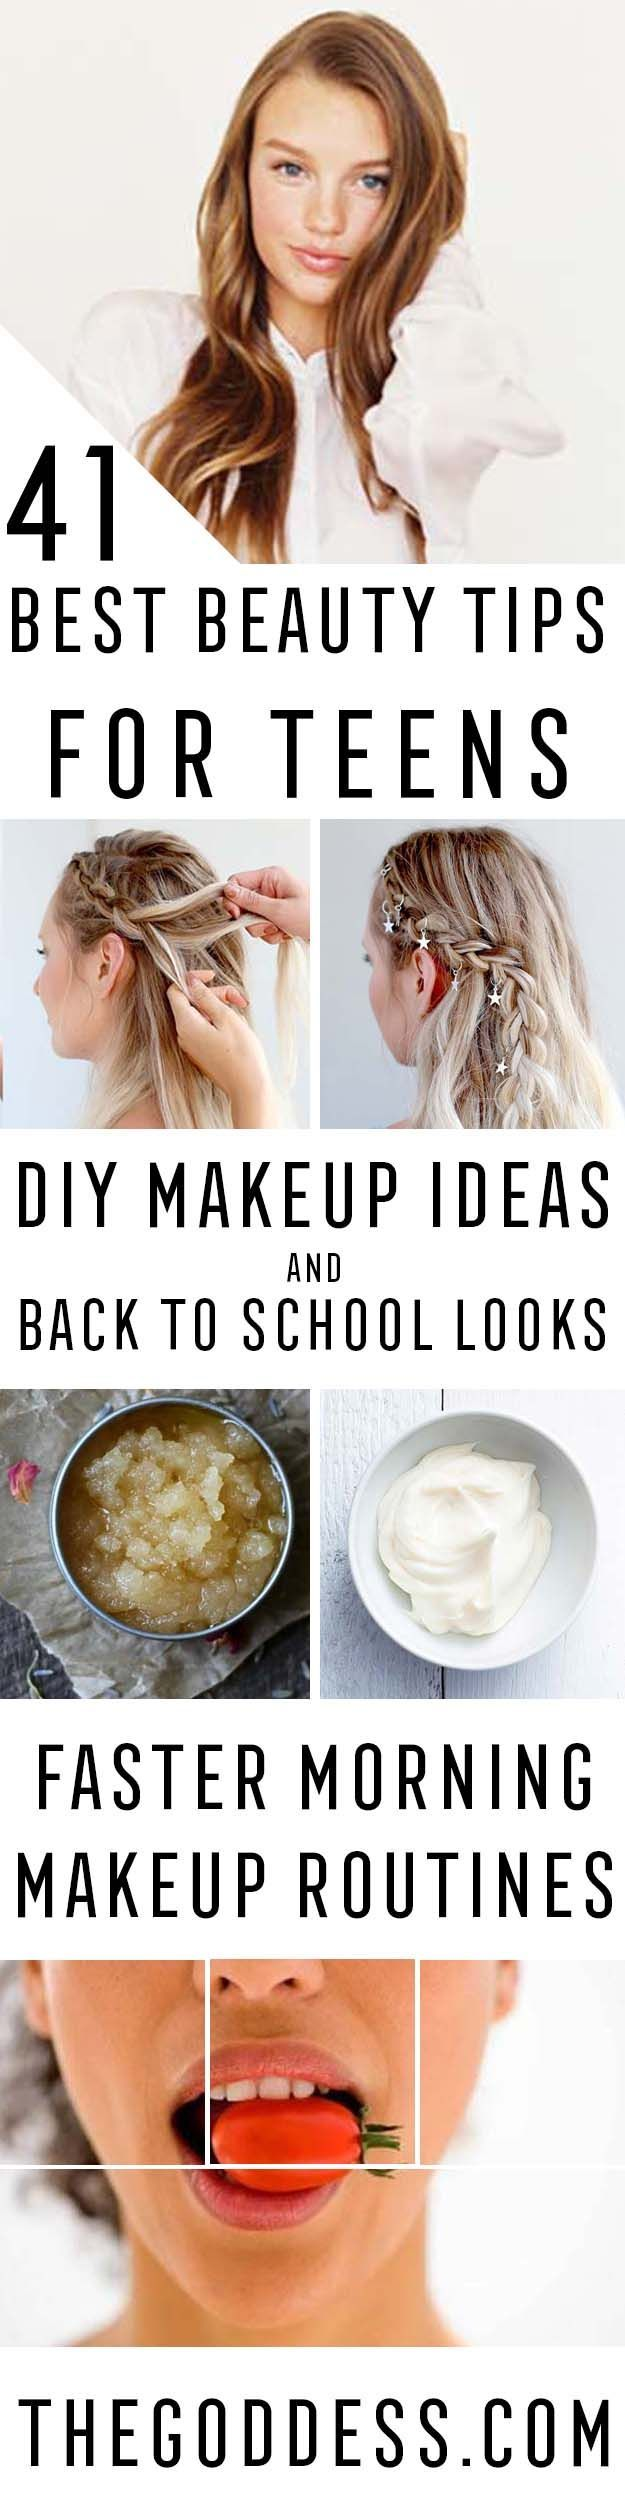 Best Beauty Tips For Teens - The Best Products And DIY Make Up Ideas For Losing Weight And Using Eye Makeup For Looking Cute When You Go Back To School. Makeup Ideas Beauty Tips Every Teen Should Know. Beauty Tips For A Faster Morning Routine And Homemade DIY Beauty Tips And Tricks For Teenage Girls. Some Beauty Tips For Face And Glowing Skin And Simple Beauty Tips To Fight Acne And Prevent Breakouts And Blackheads. Get Rid Of Pimples And Acne Scars. Teenage Makeup Kits And Products Covered…